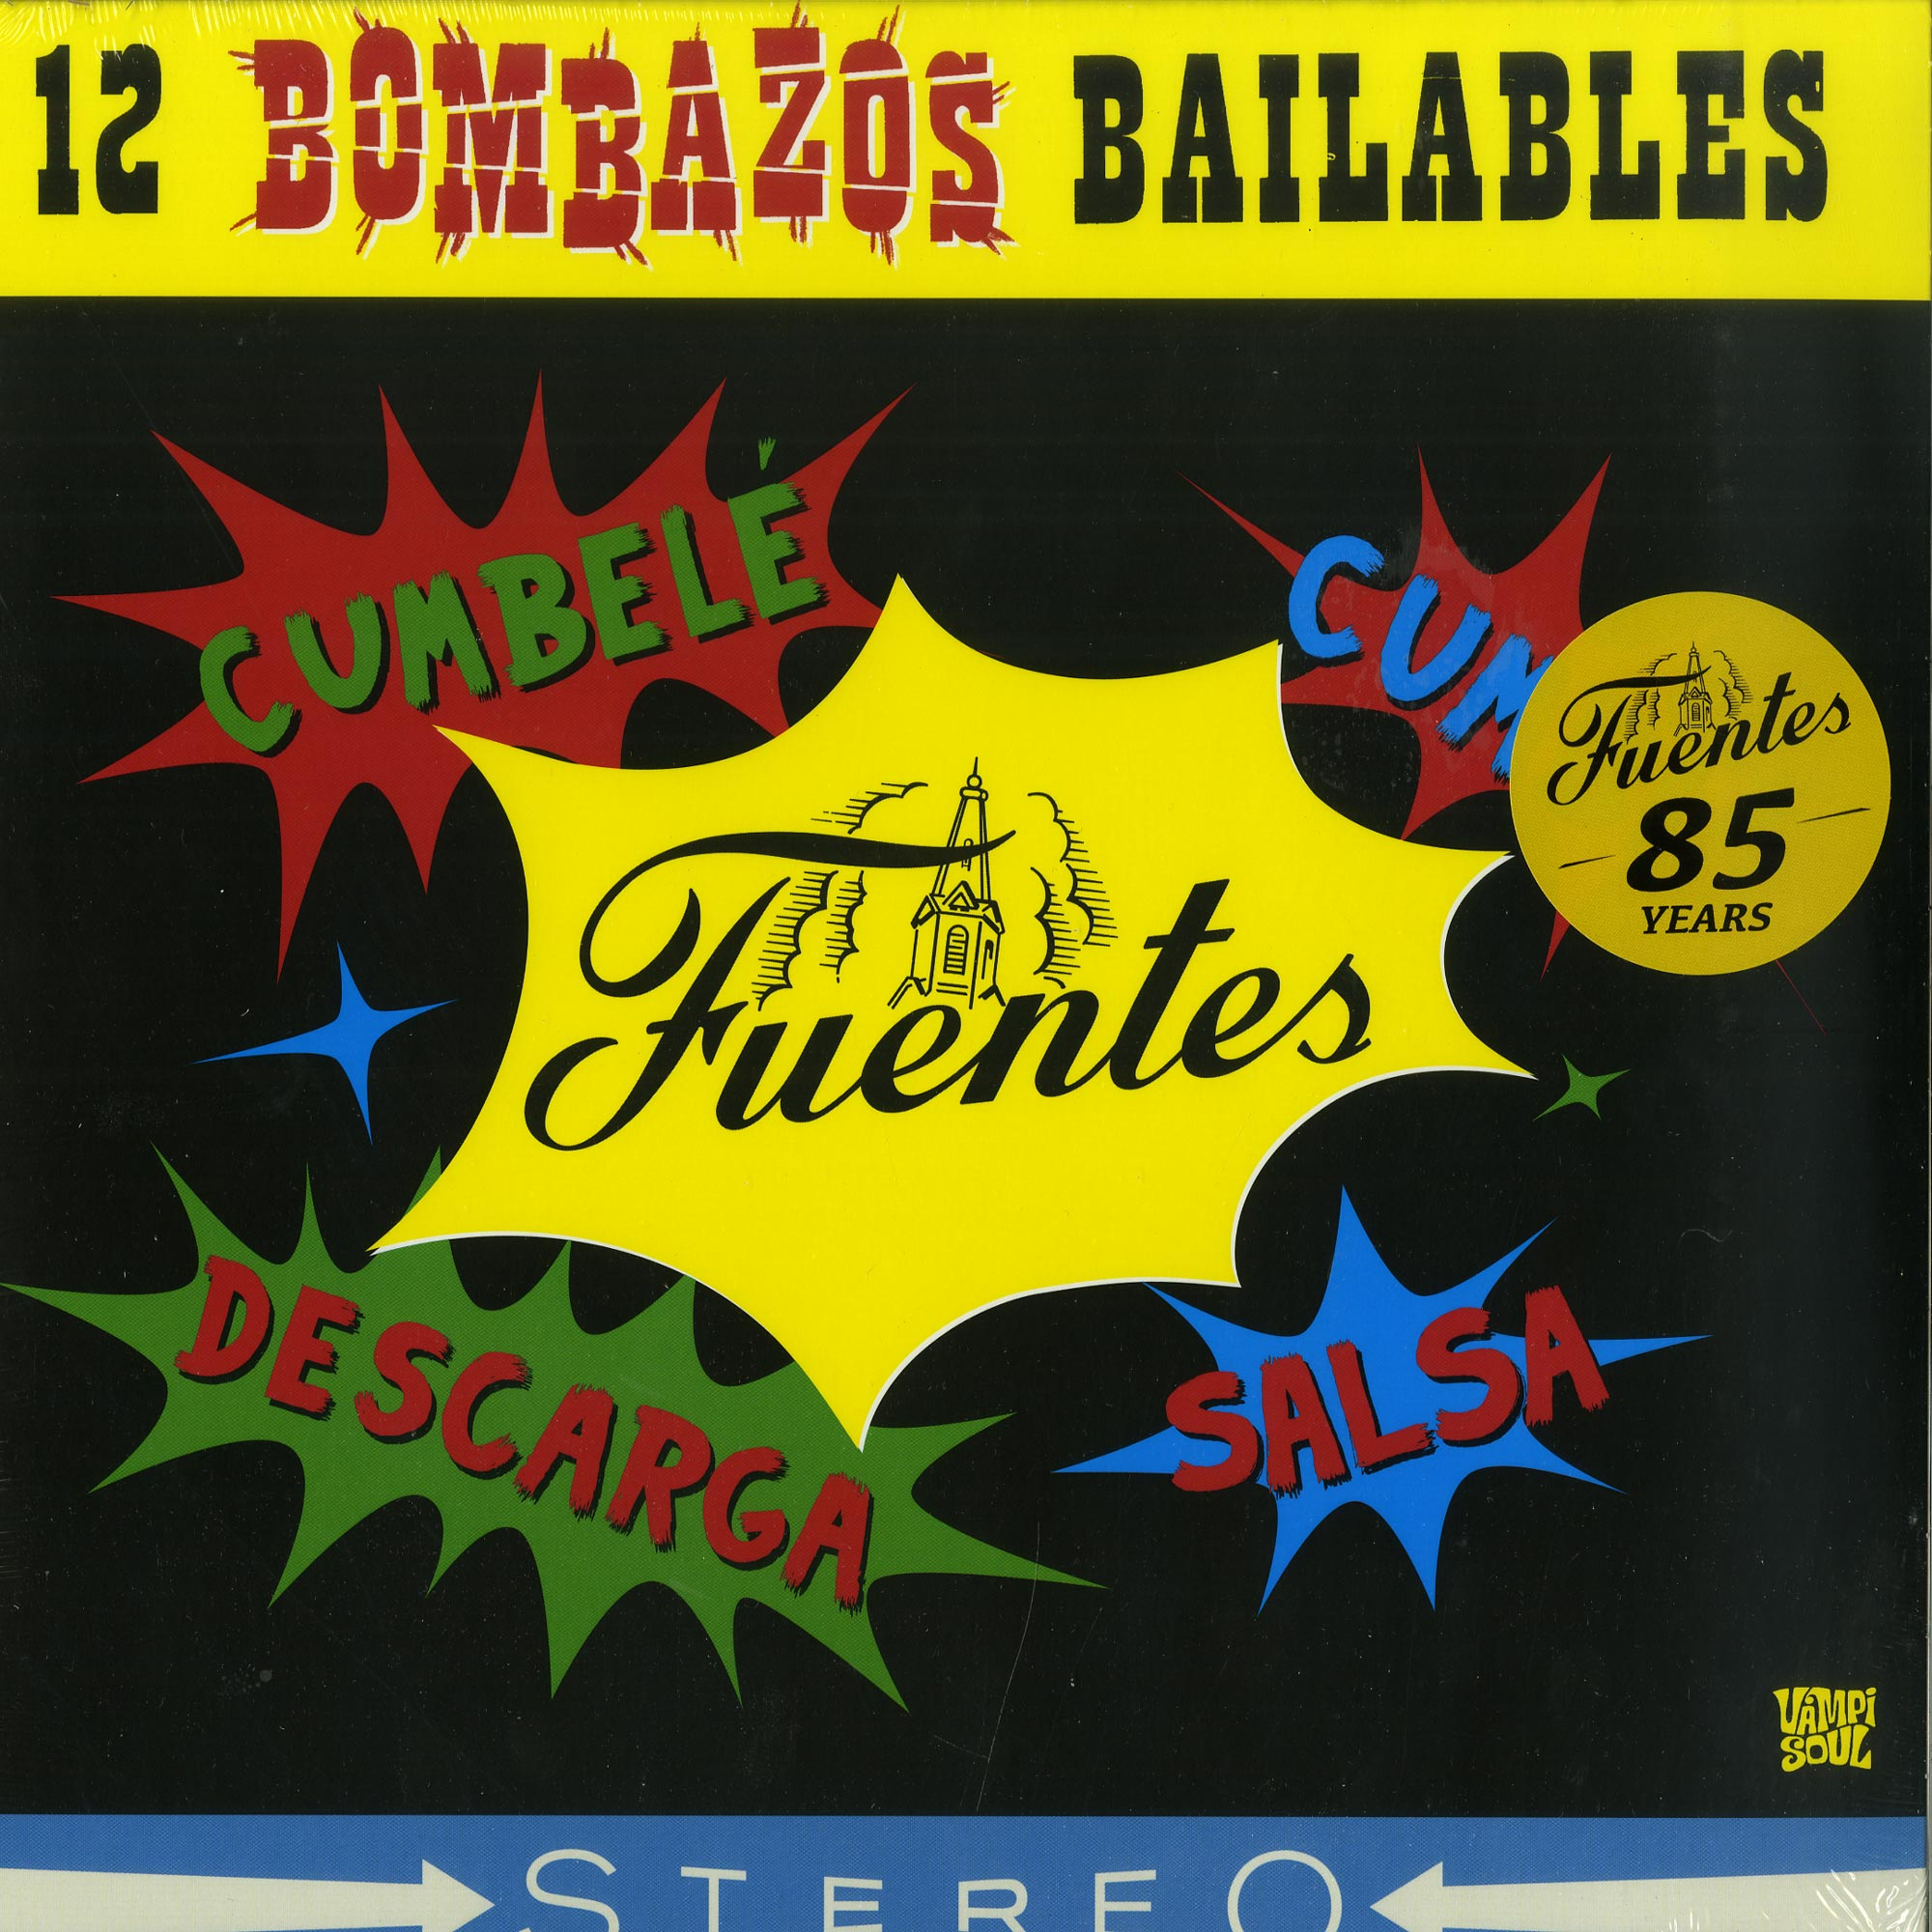 Various Artists - 12 BOMBAZOS BAILABLES